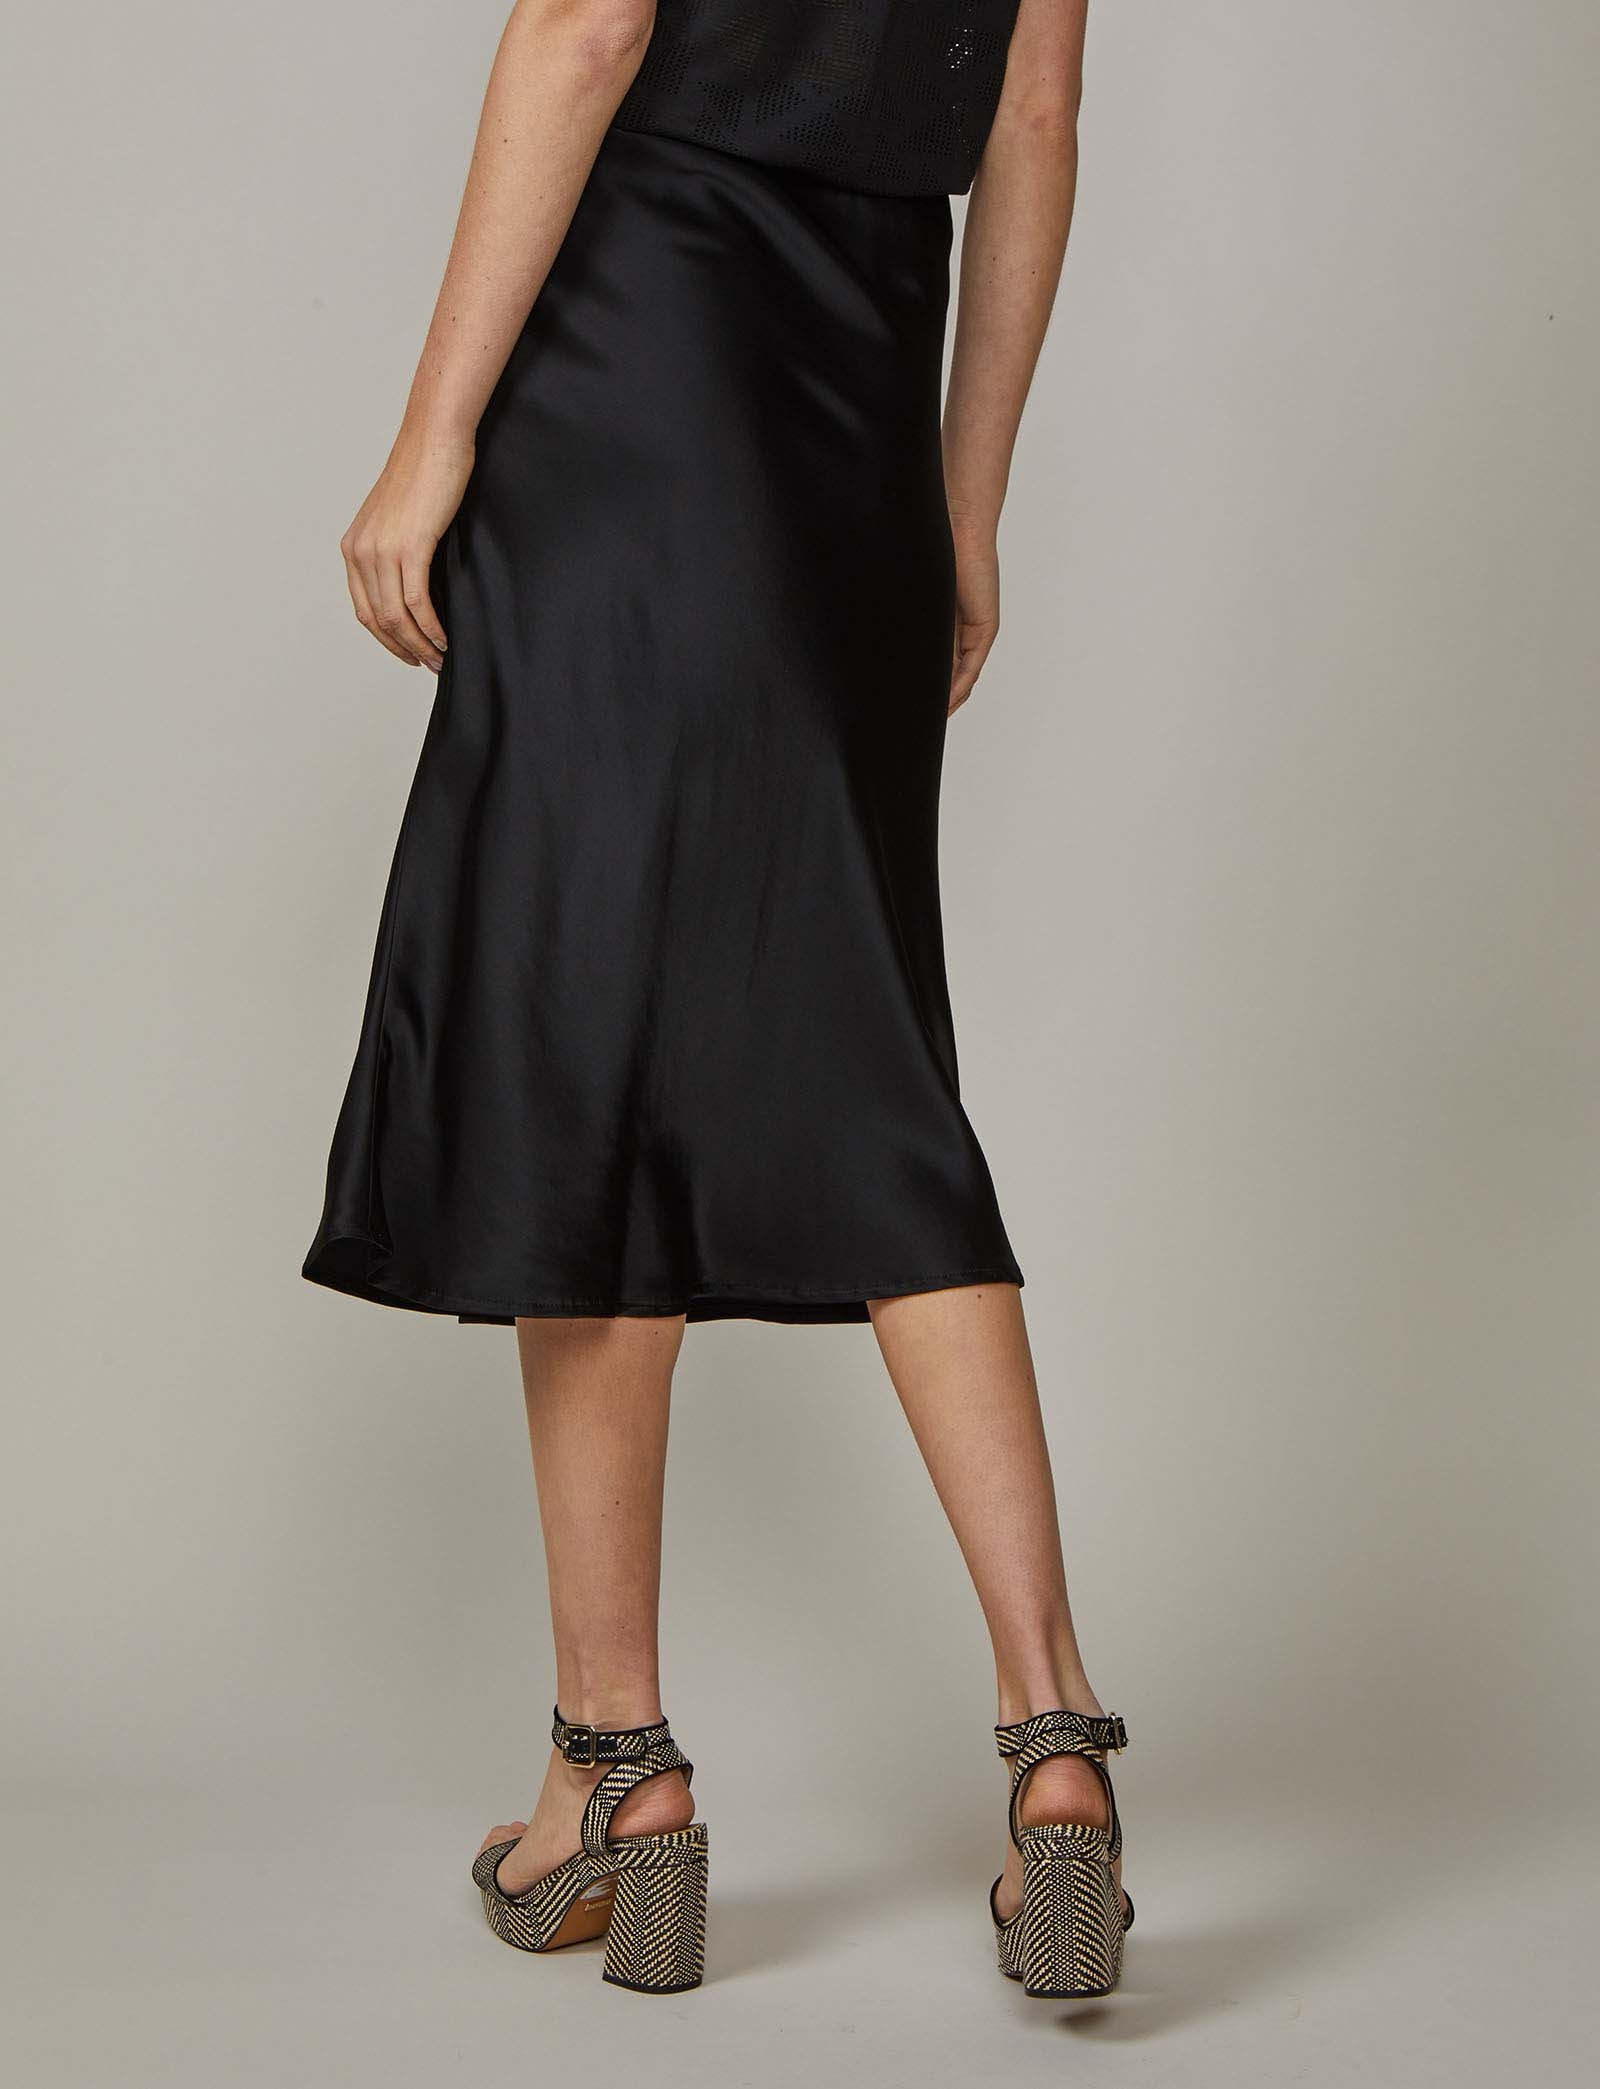 Summum Woman Skirt Satin Viscose Black